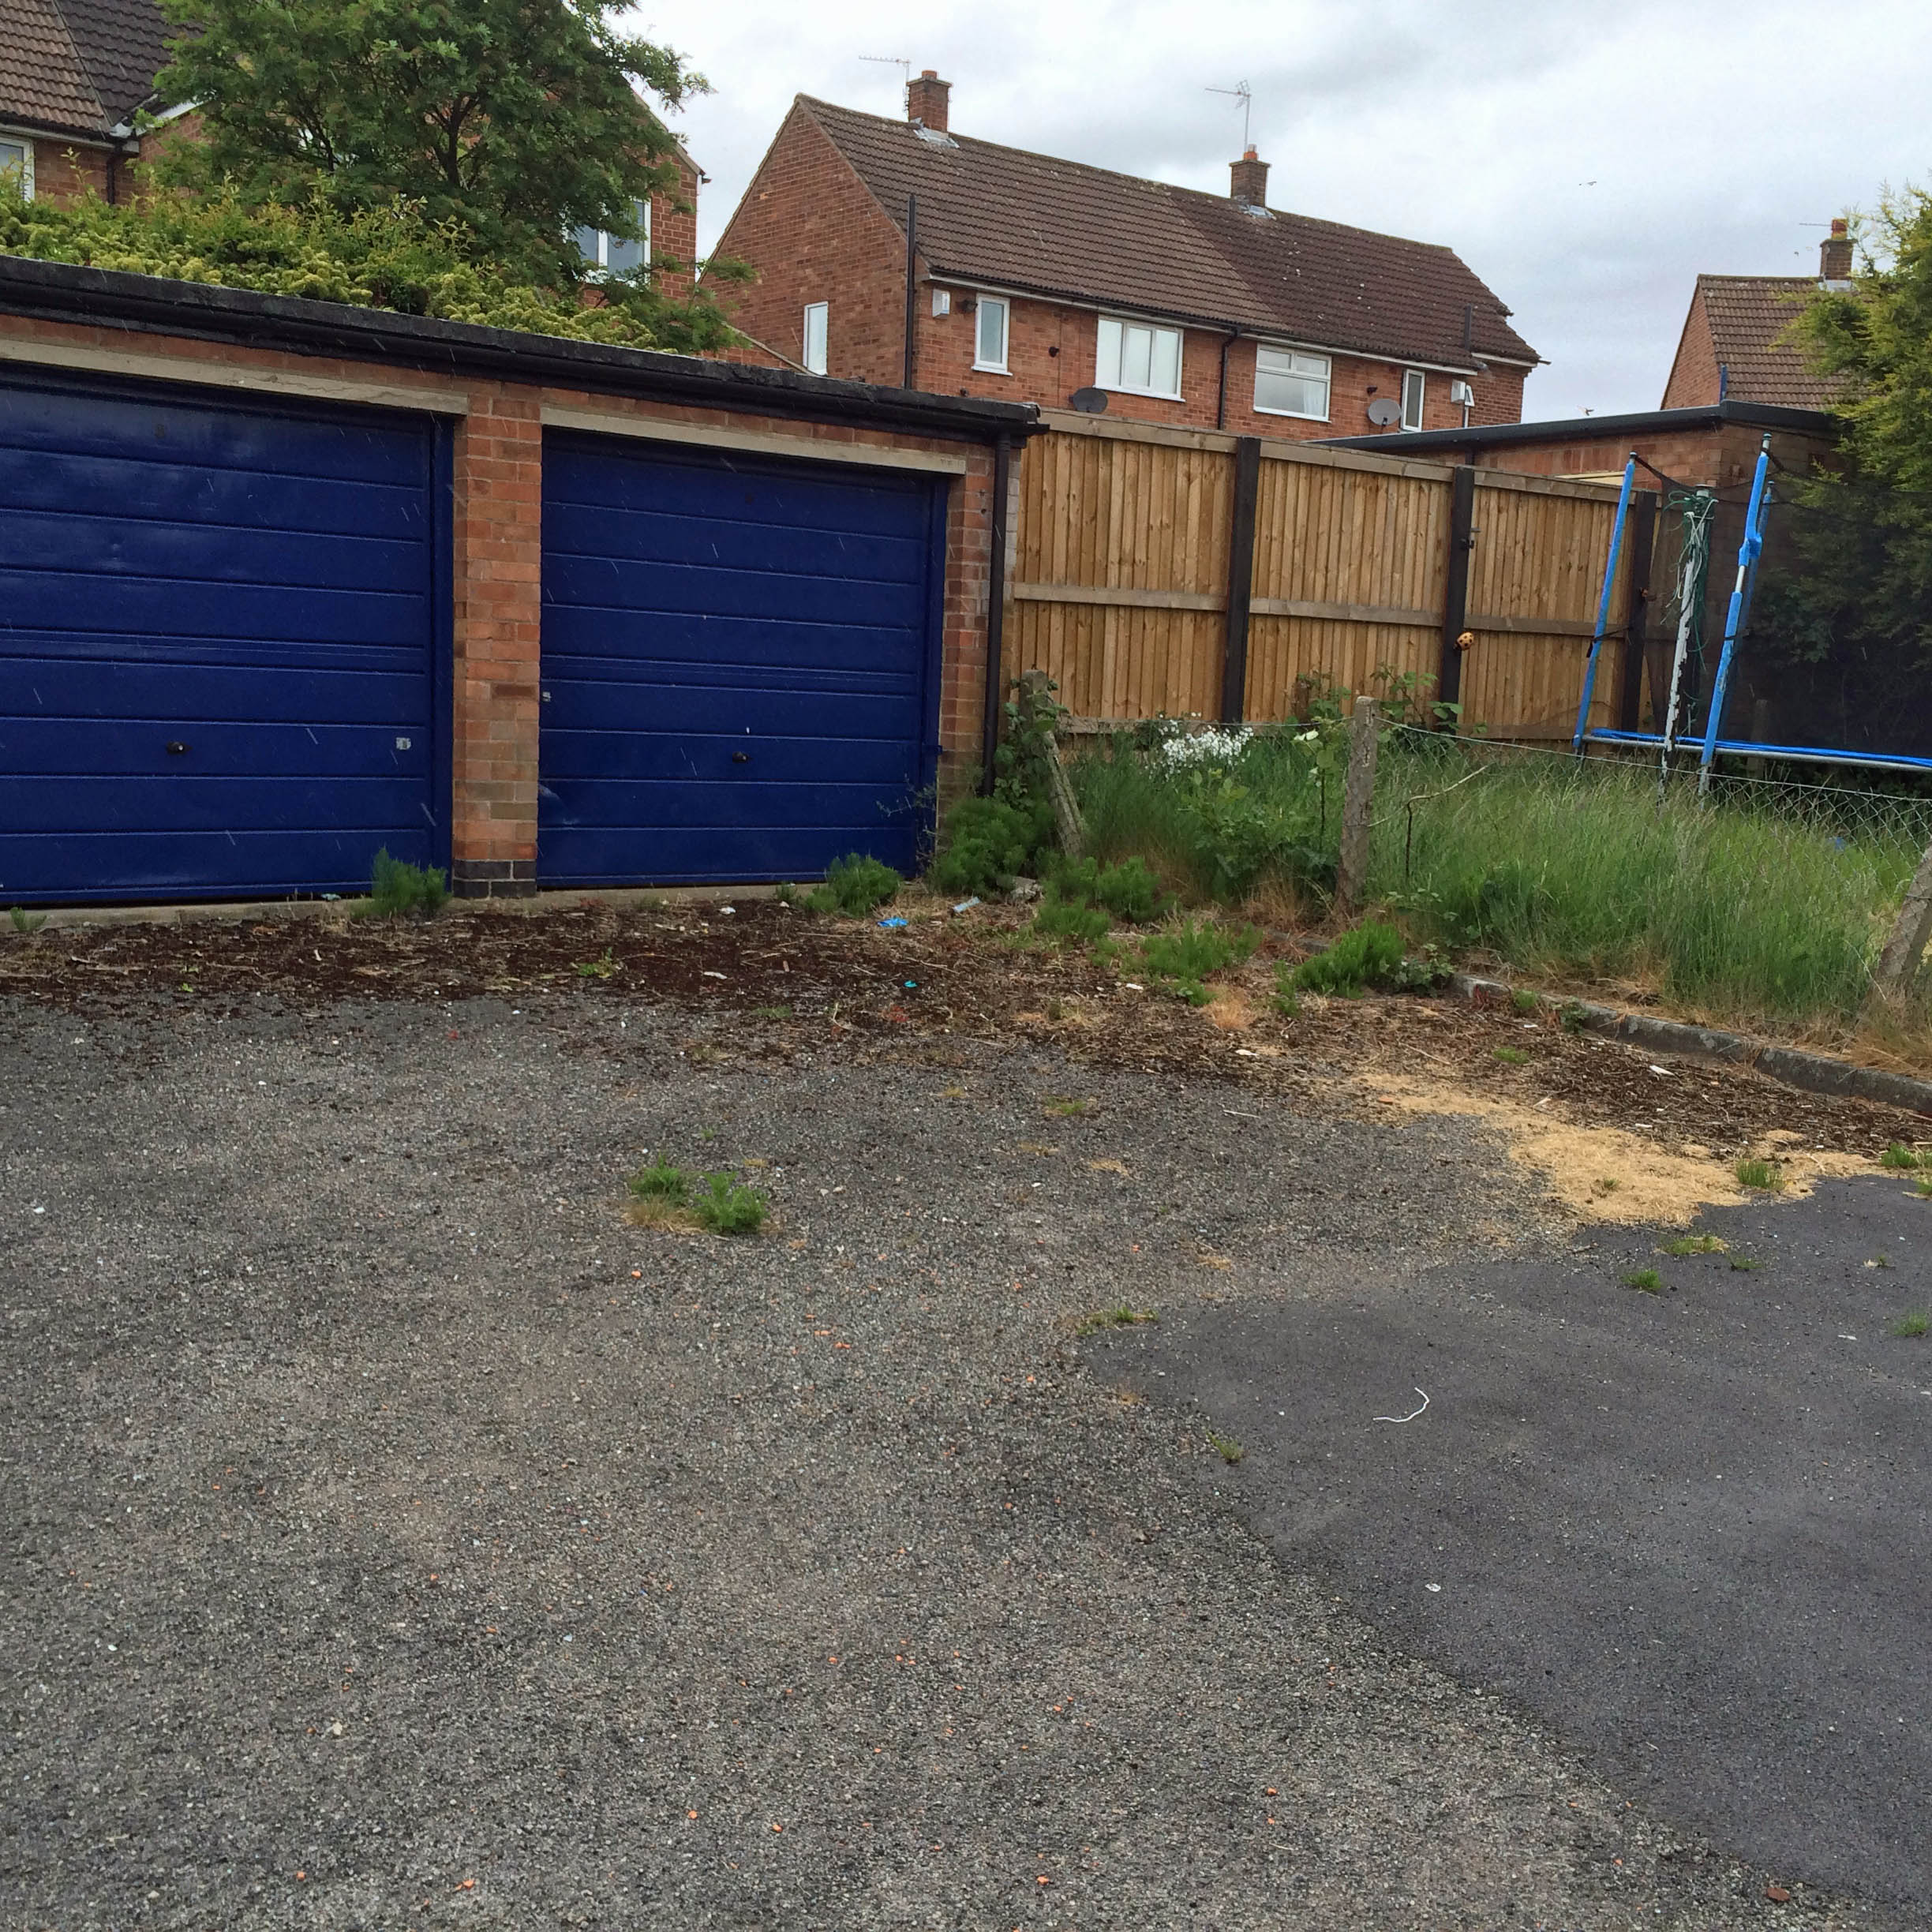 Neglected garage area on Marston Avenue 2